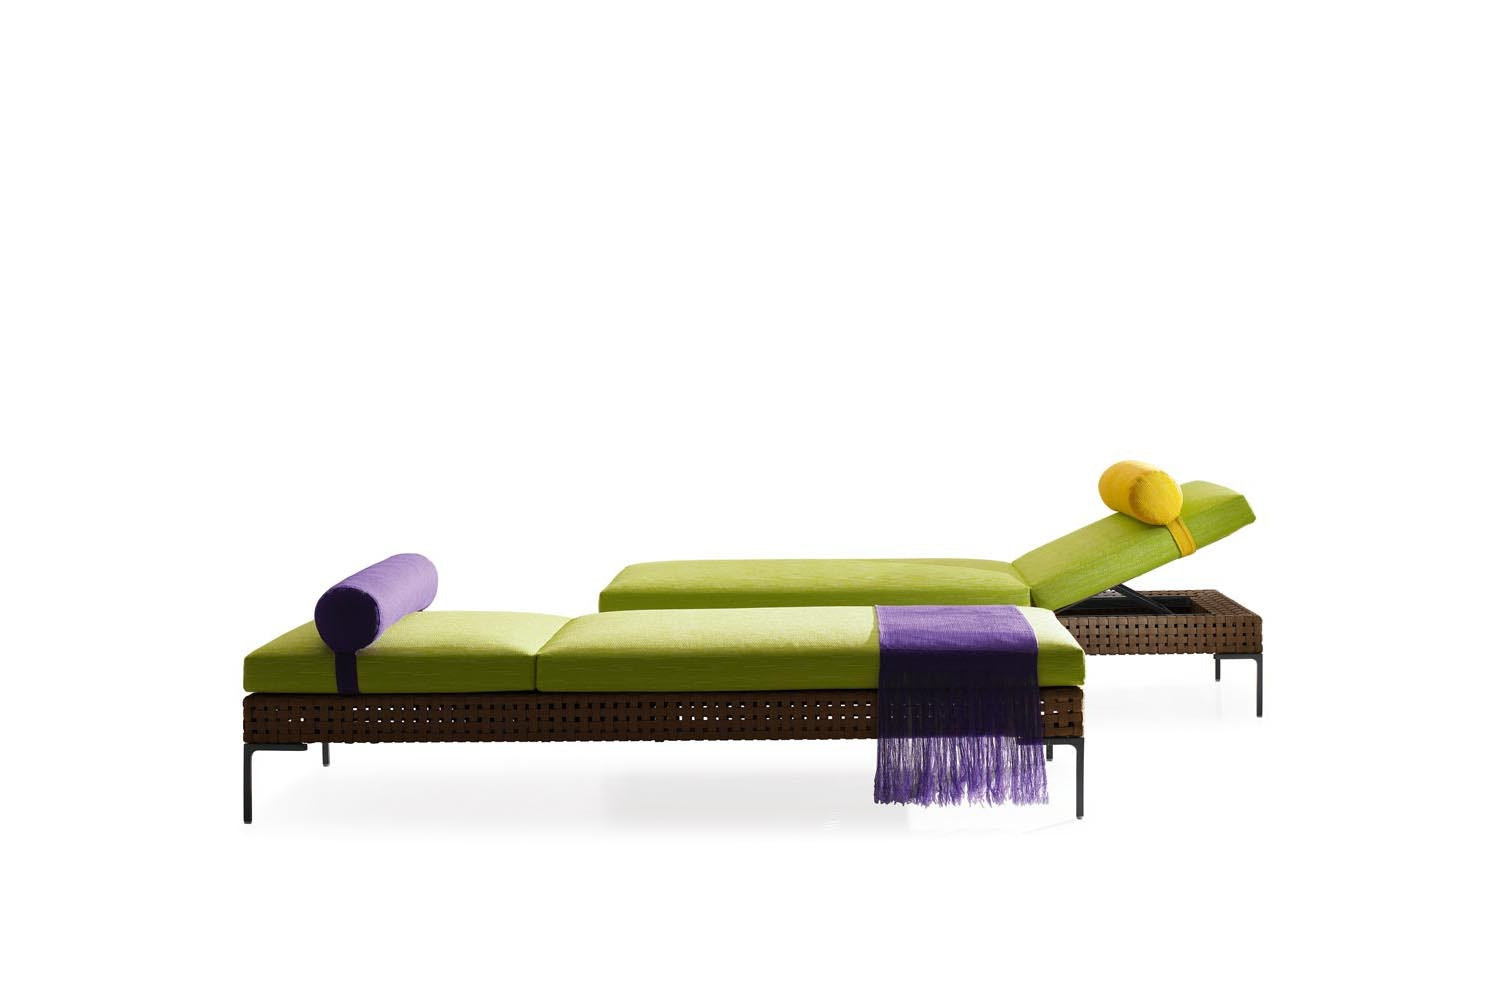 Charles Outdoor Chaise Longue by Antonio Citterio for B&B Italia